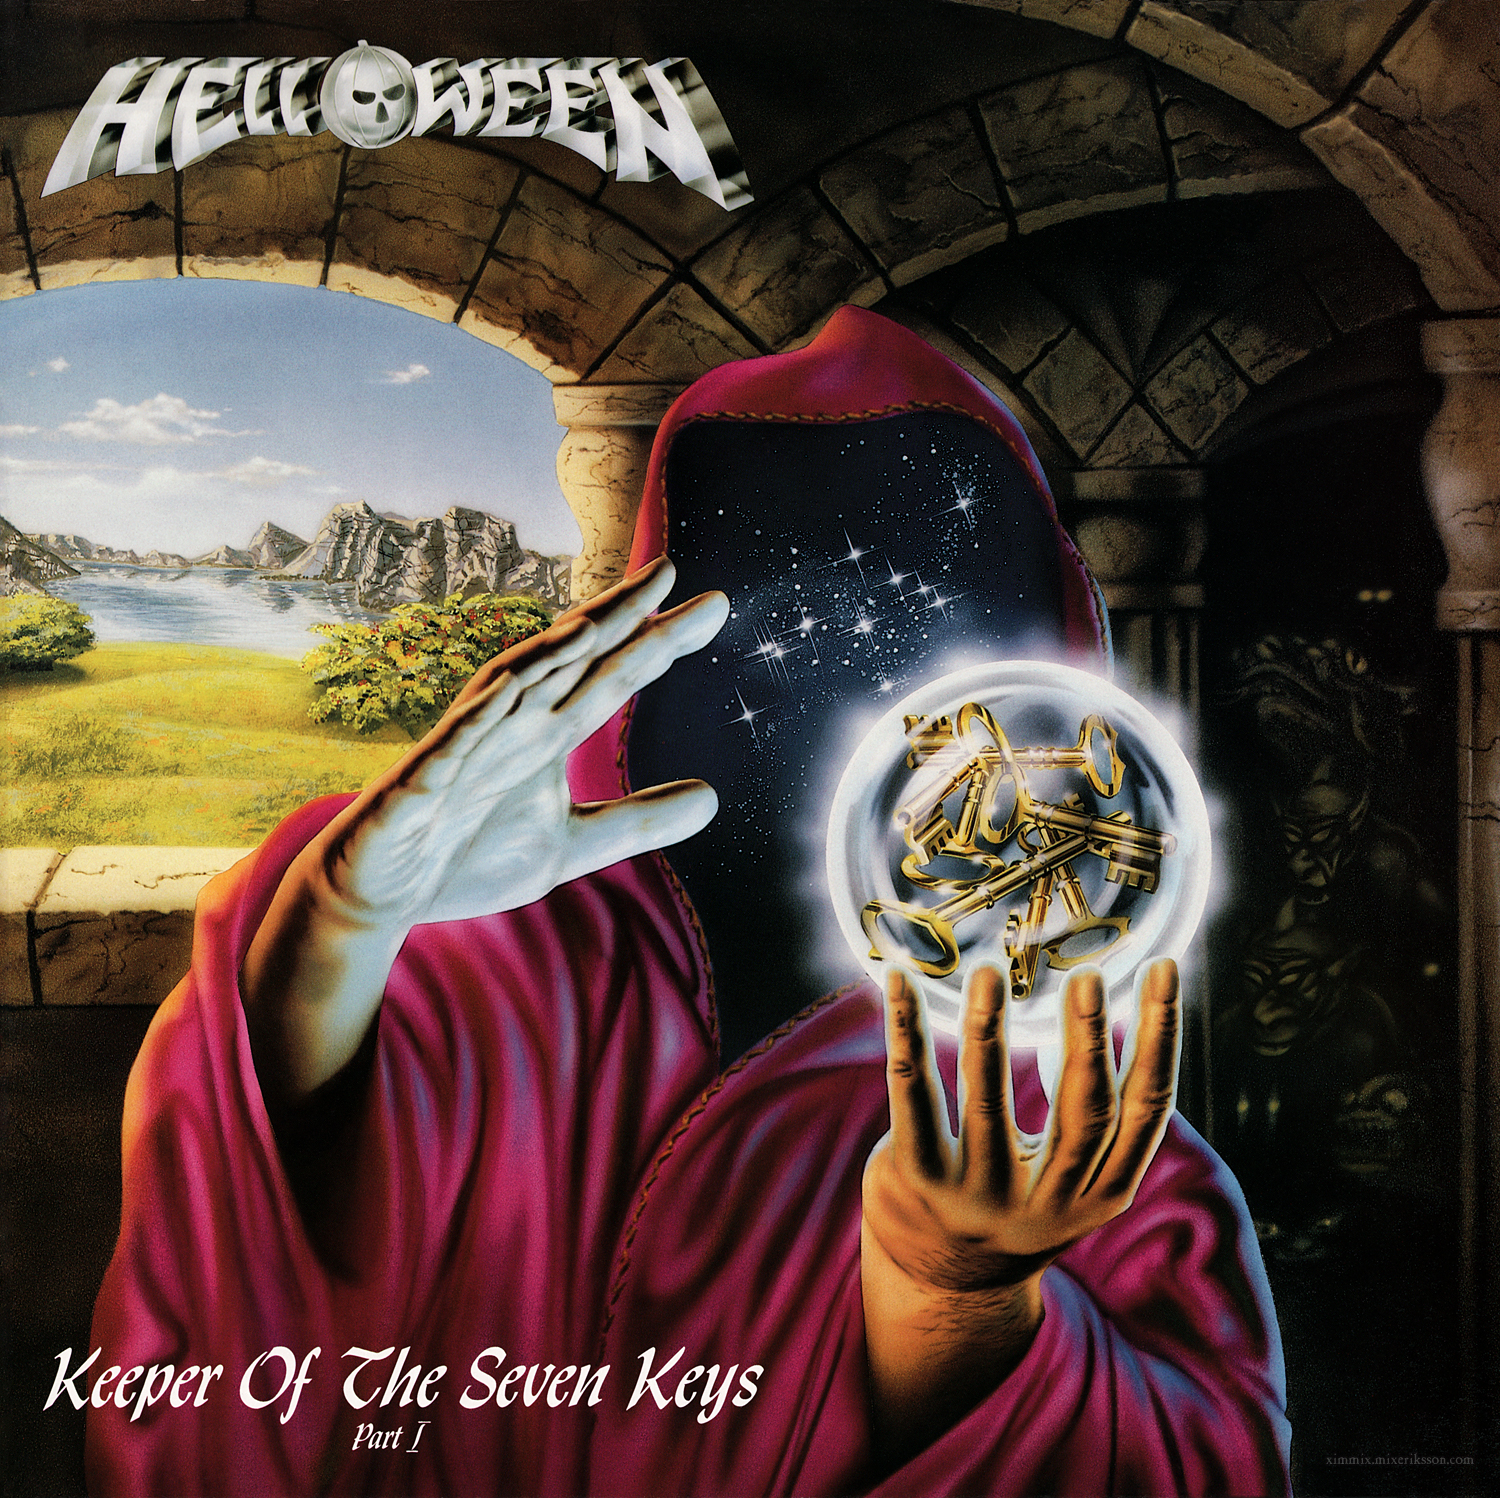 helloween-keeper-of-the-seven-keys-cover-